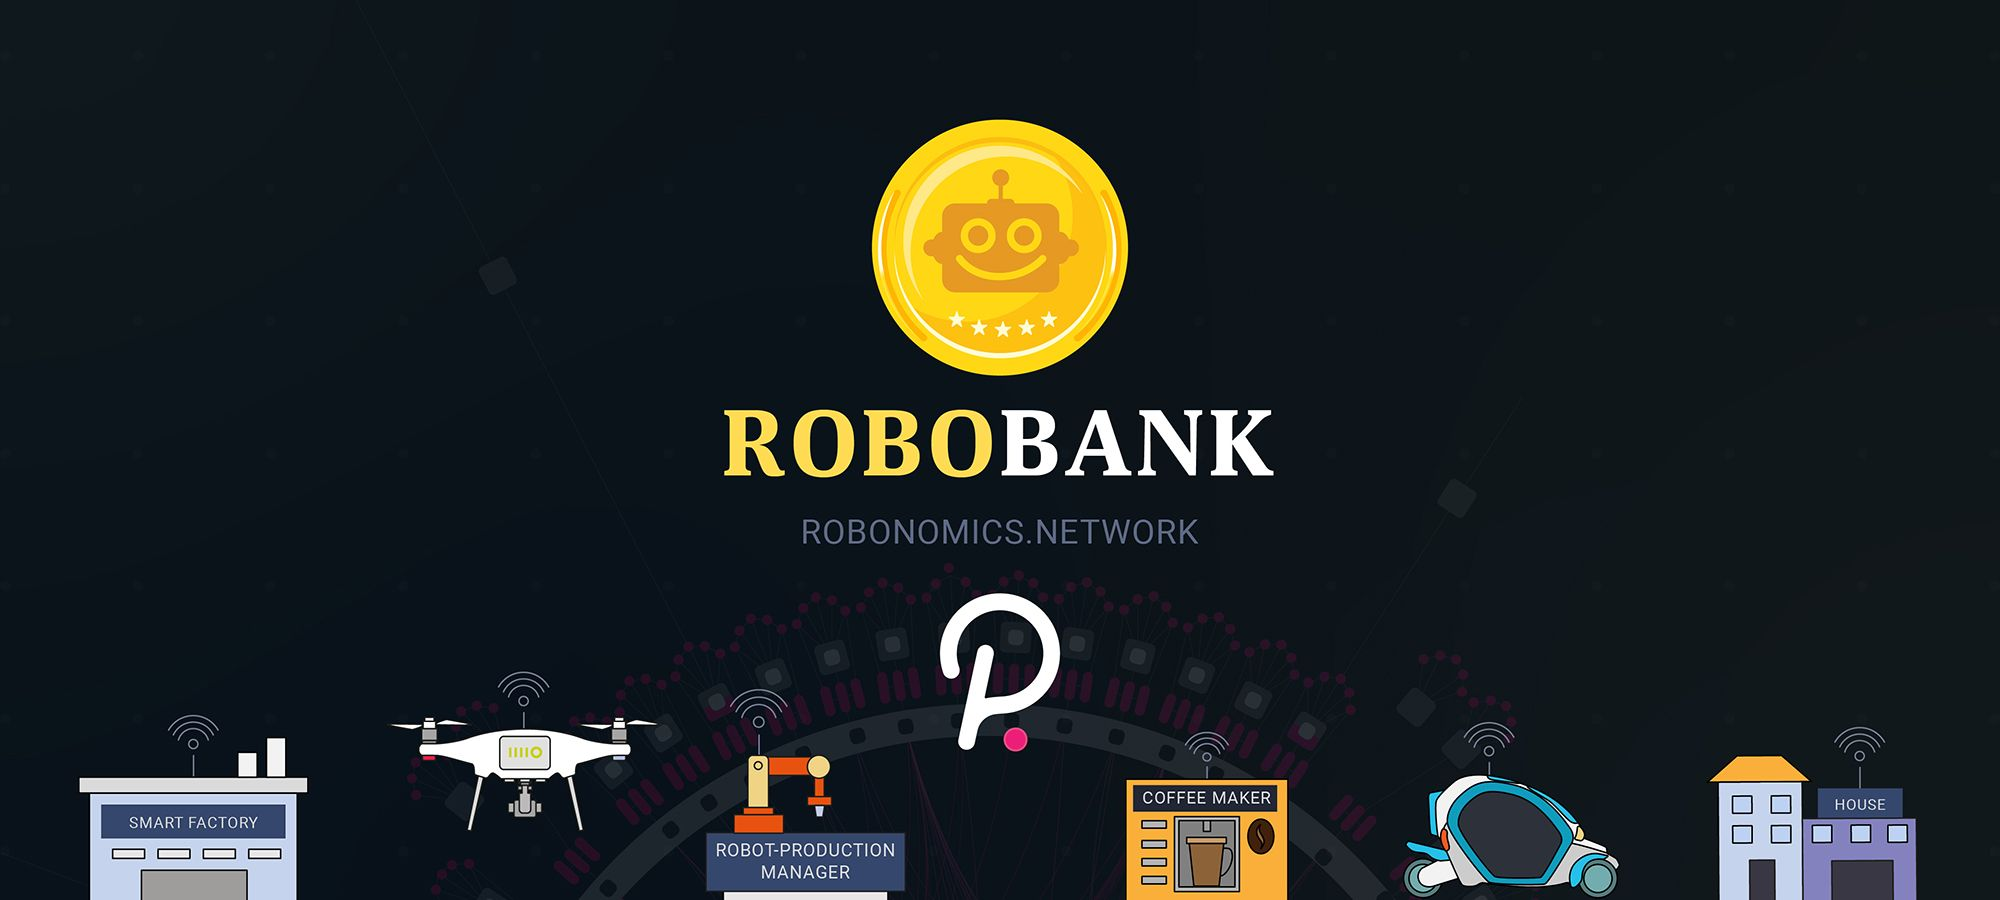 Robobank. Accept any Polkadot token in automation services / Robonomics Network